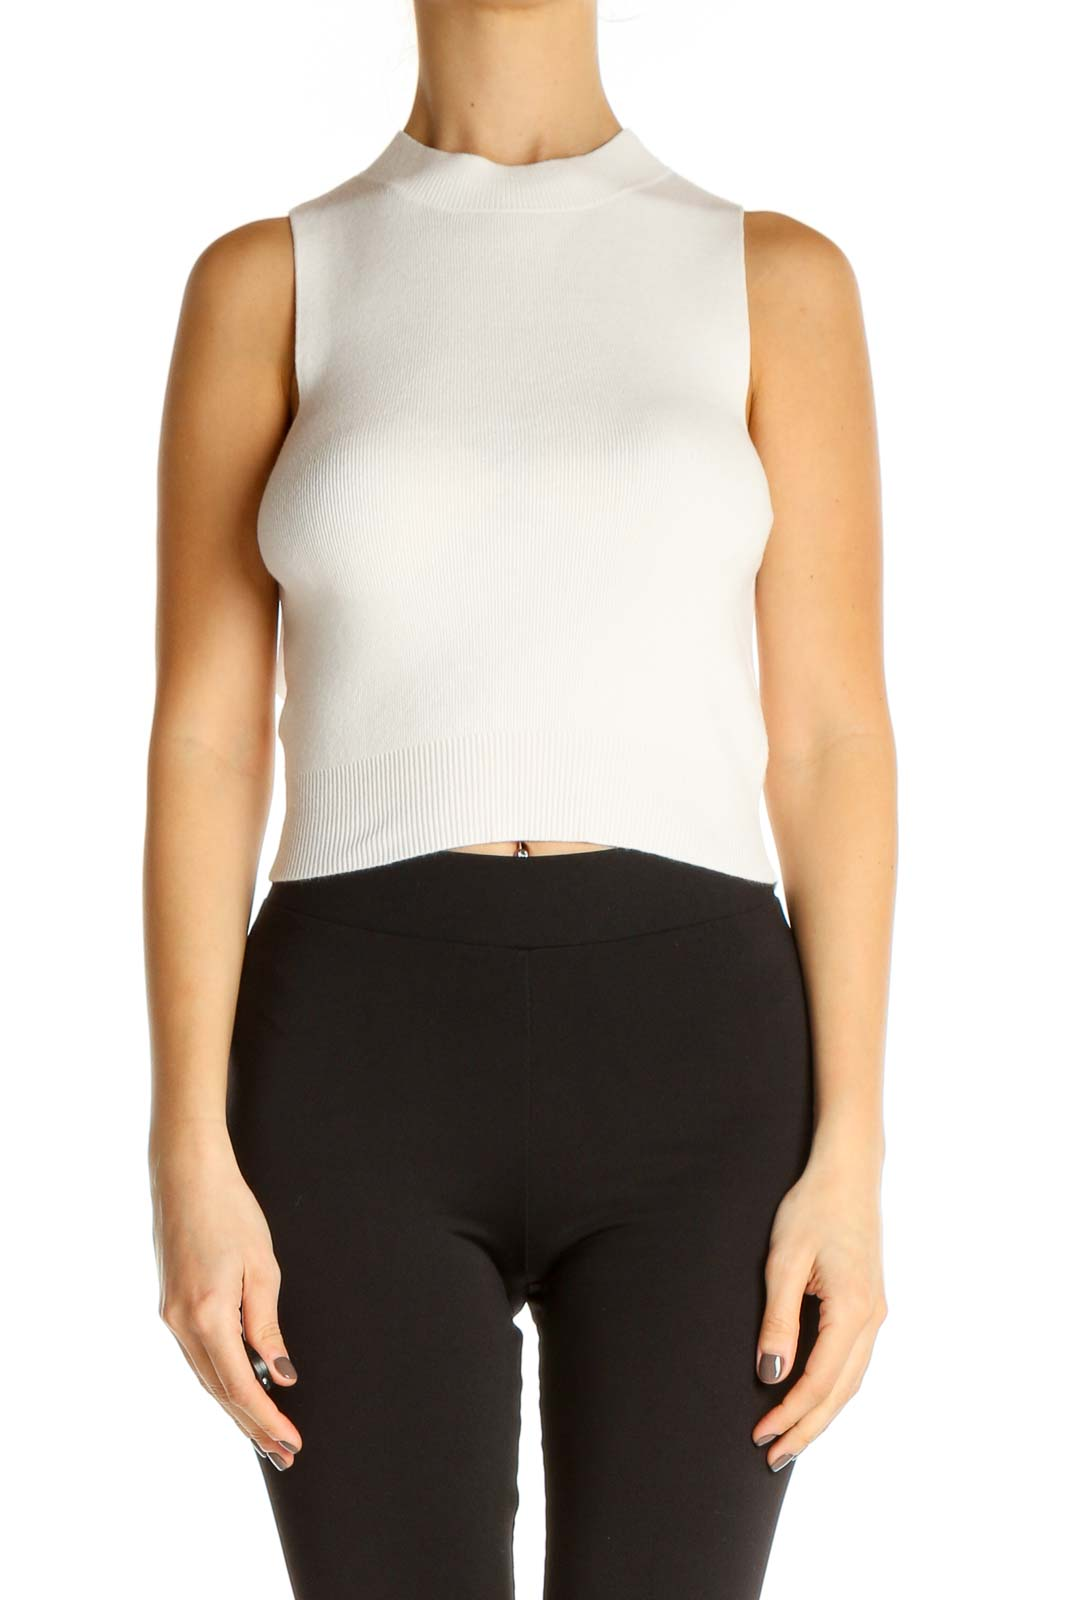 White Solid Chic Tank Top Front